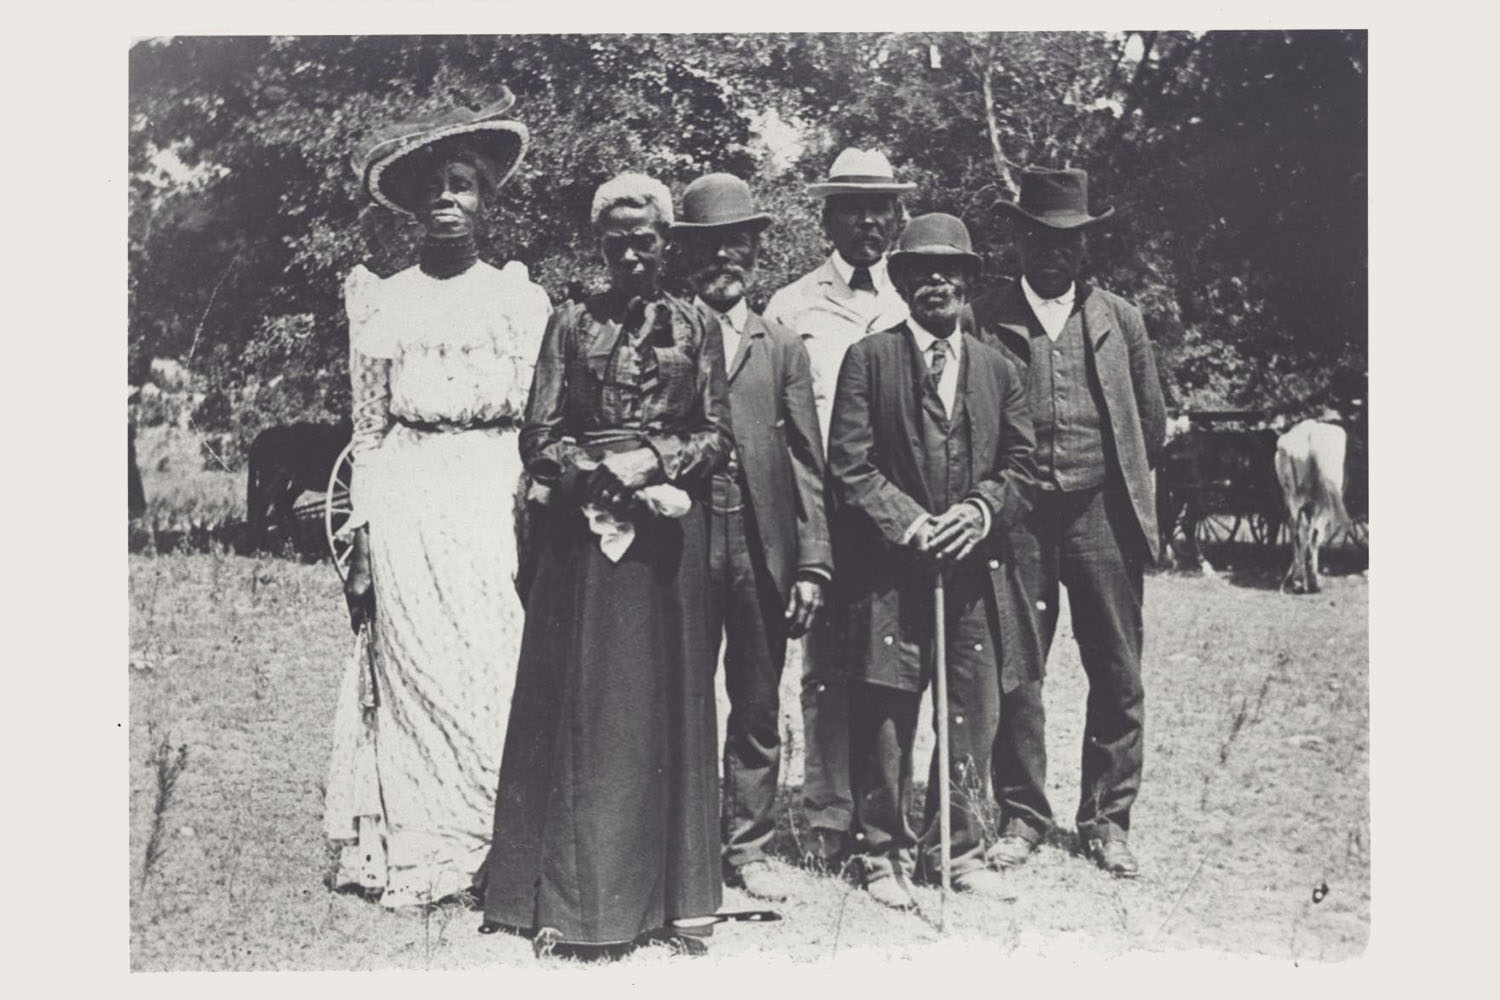 Juneteenth Emancipation Day Celebration from June 19, 1900.